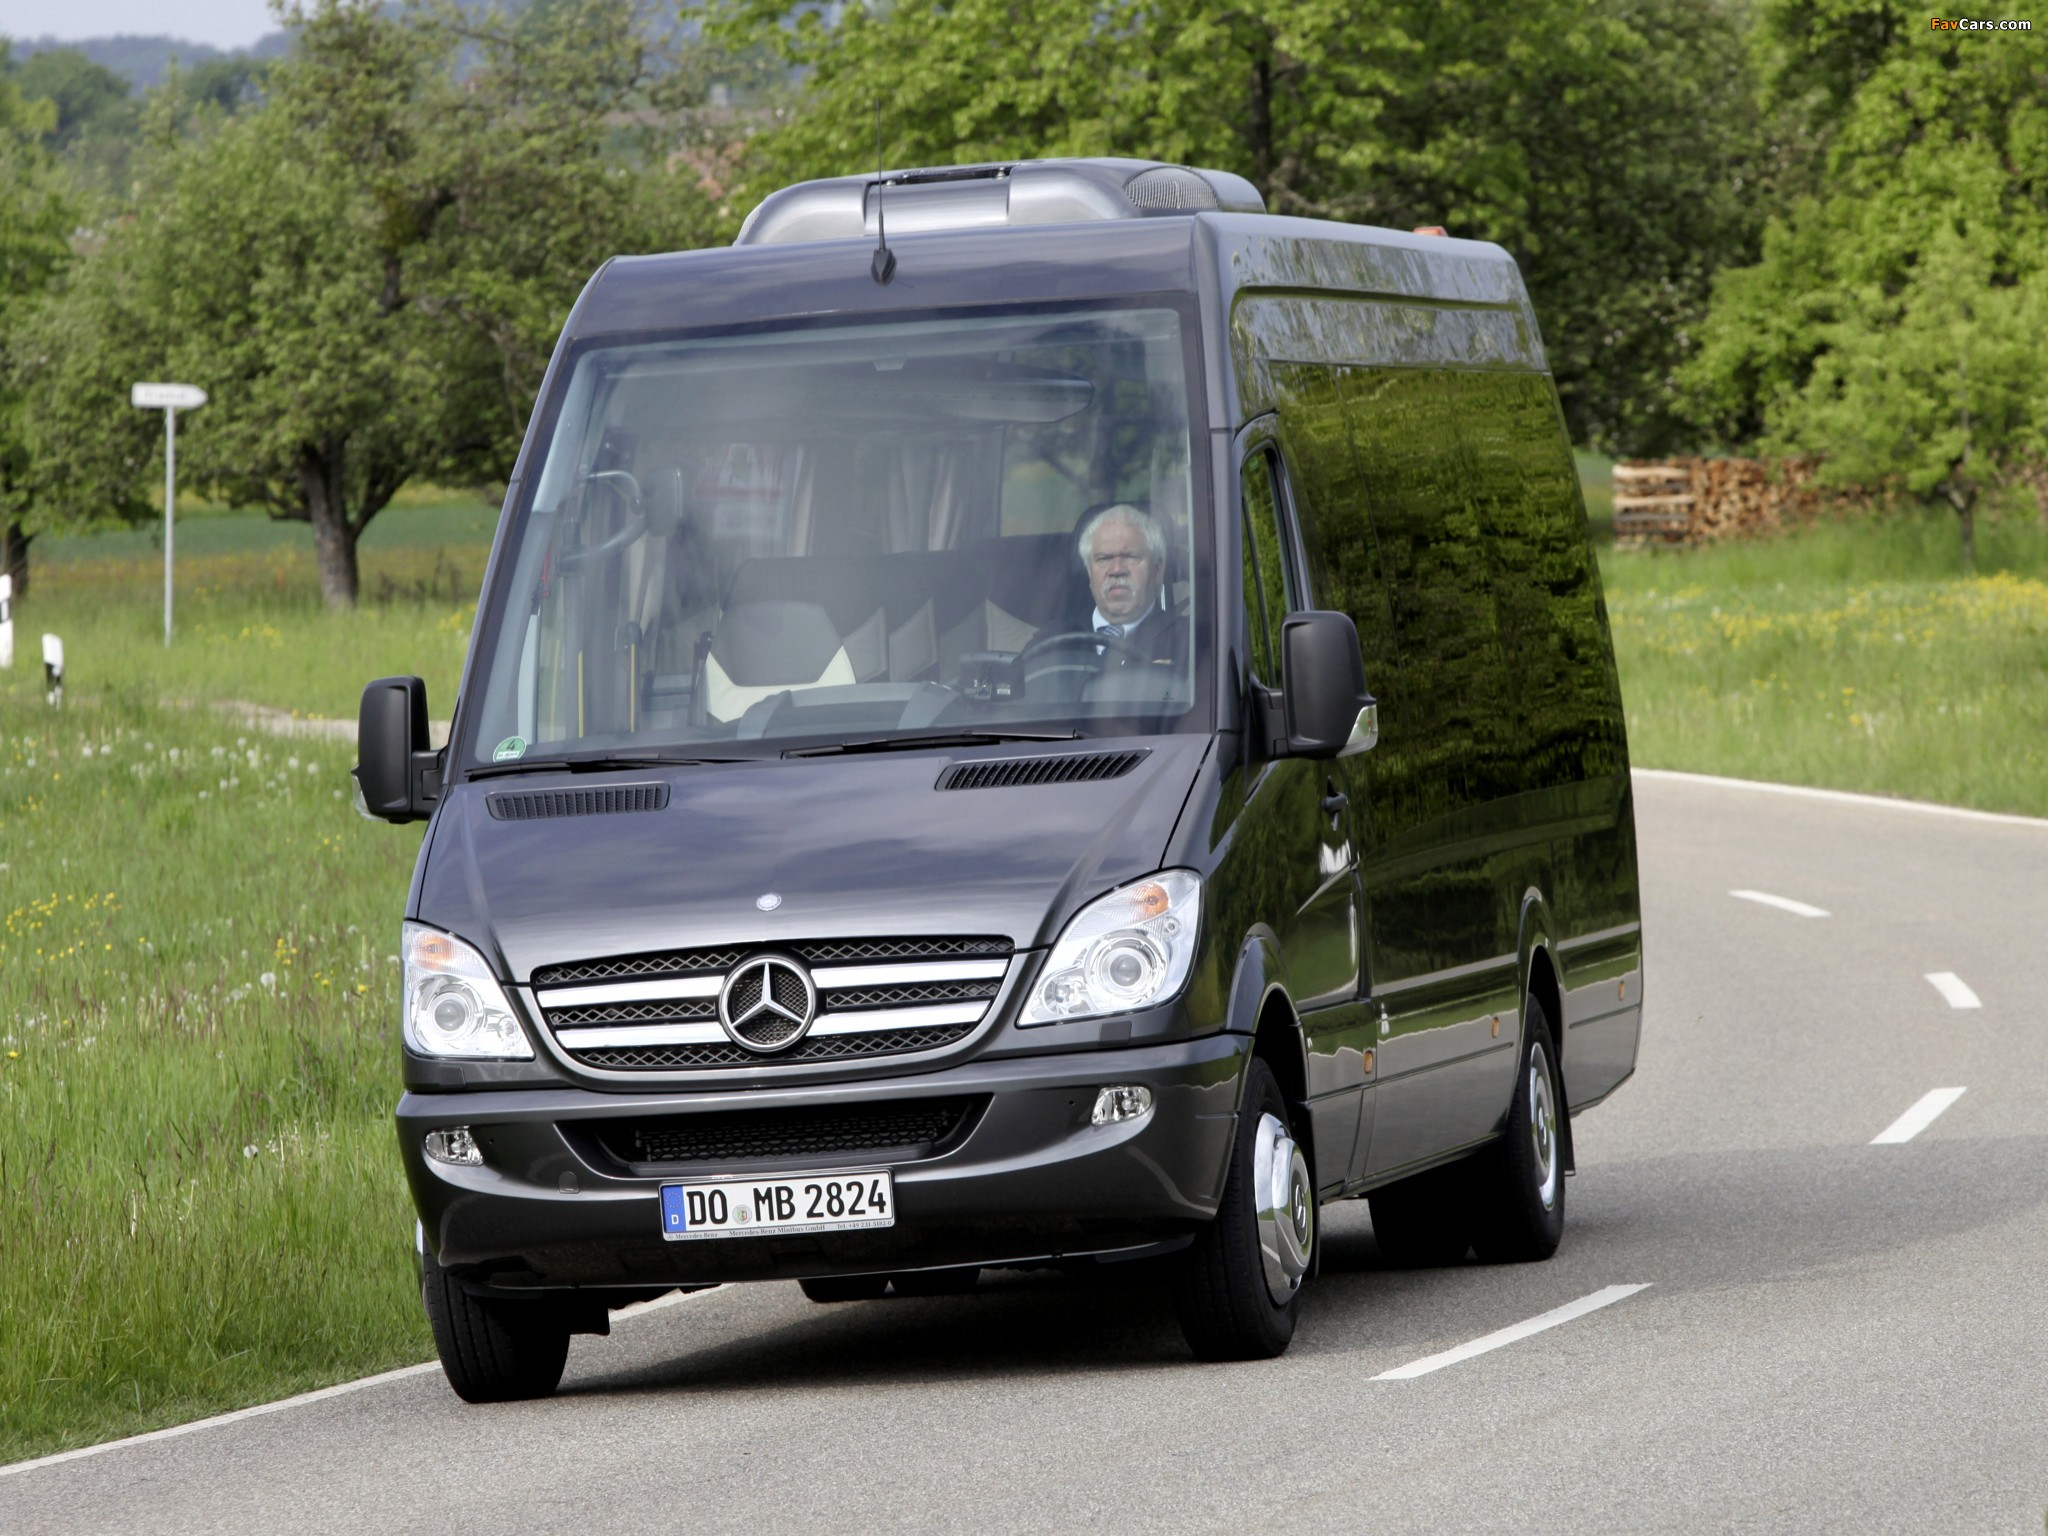 photos of mercedes benz sprinter travel 65 w906 2006. Black Bedroom Furniture Sets. Home Design Ideas